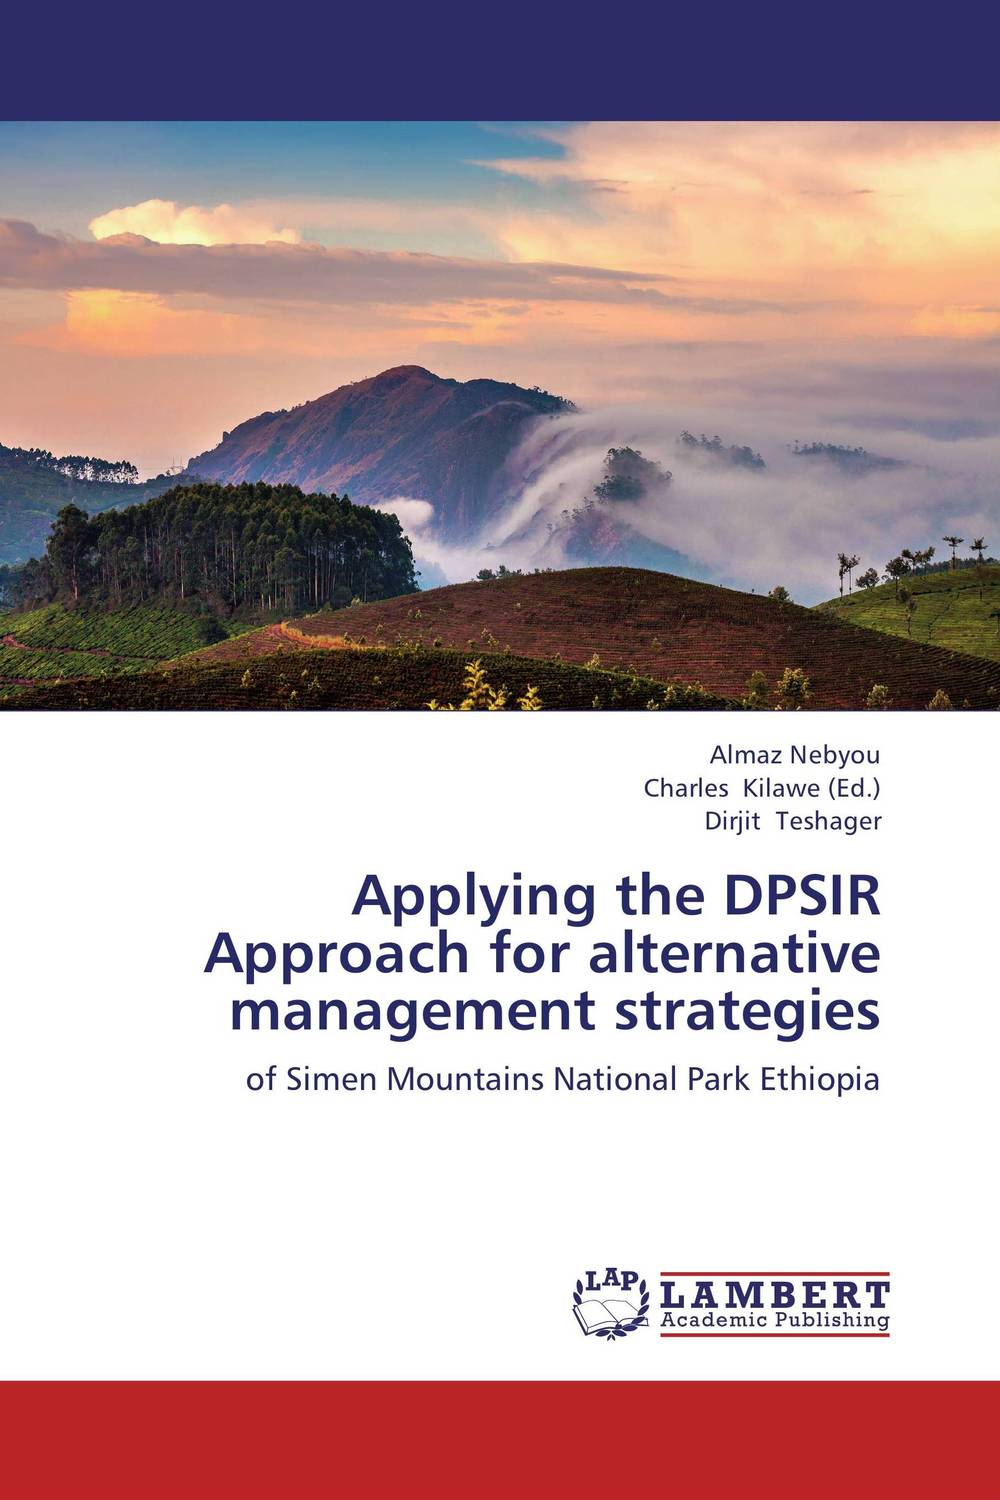 Applying the DPSIR Approach for alternative management strategies john abbink b alternative assets and strategic allocation rethinking the institutional approach